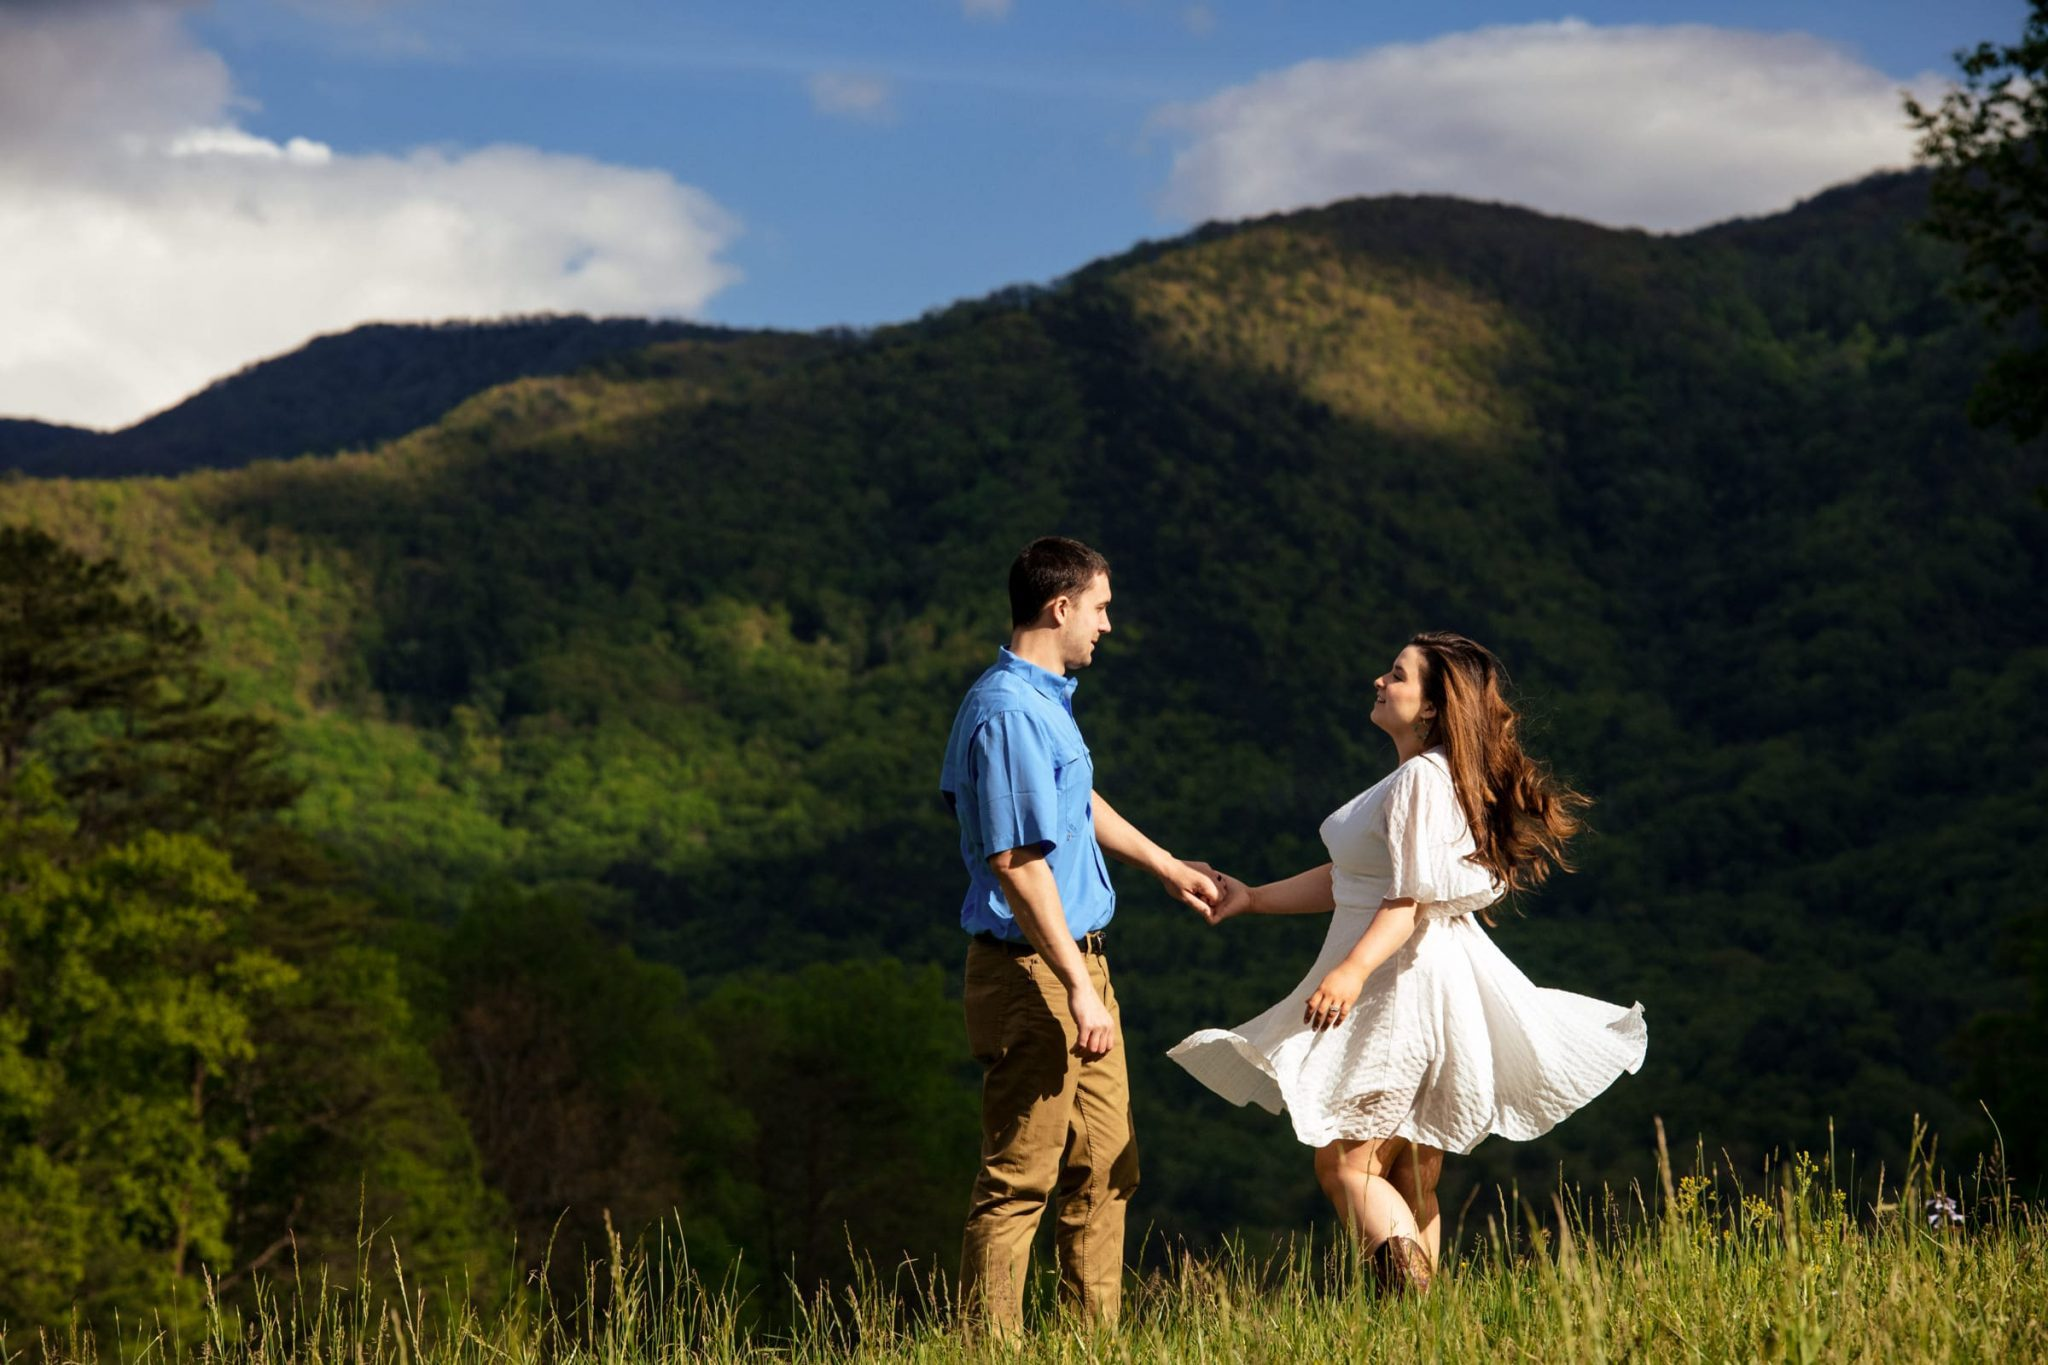 Couple's engagement photo session, walking through a meadow in the mountains